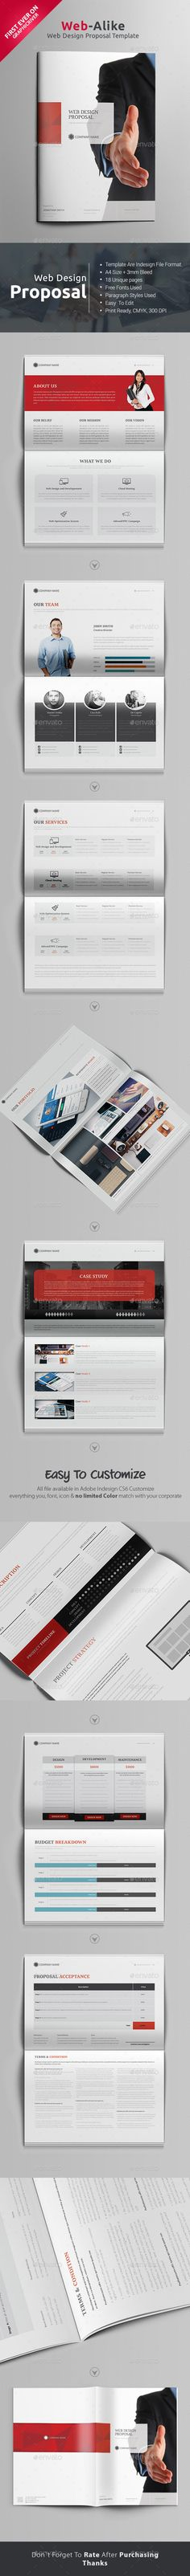 A web design project proposal for Travelgram PH Travel Agency - website proposal template